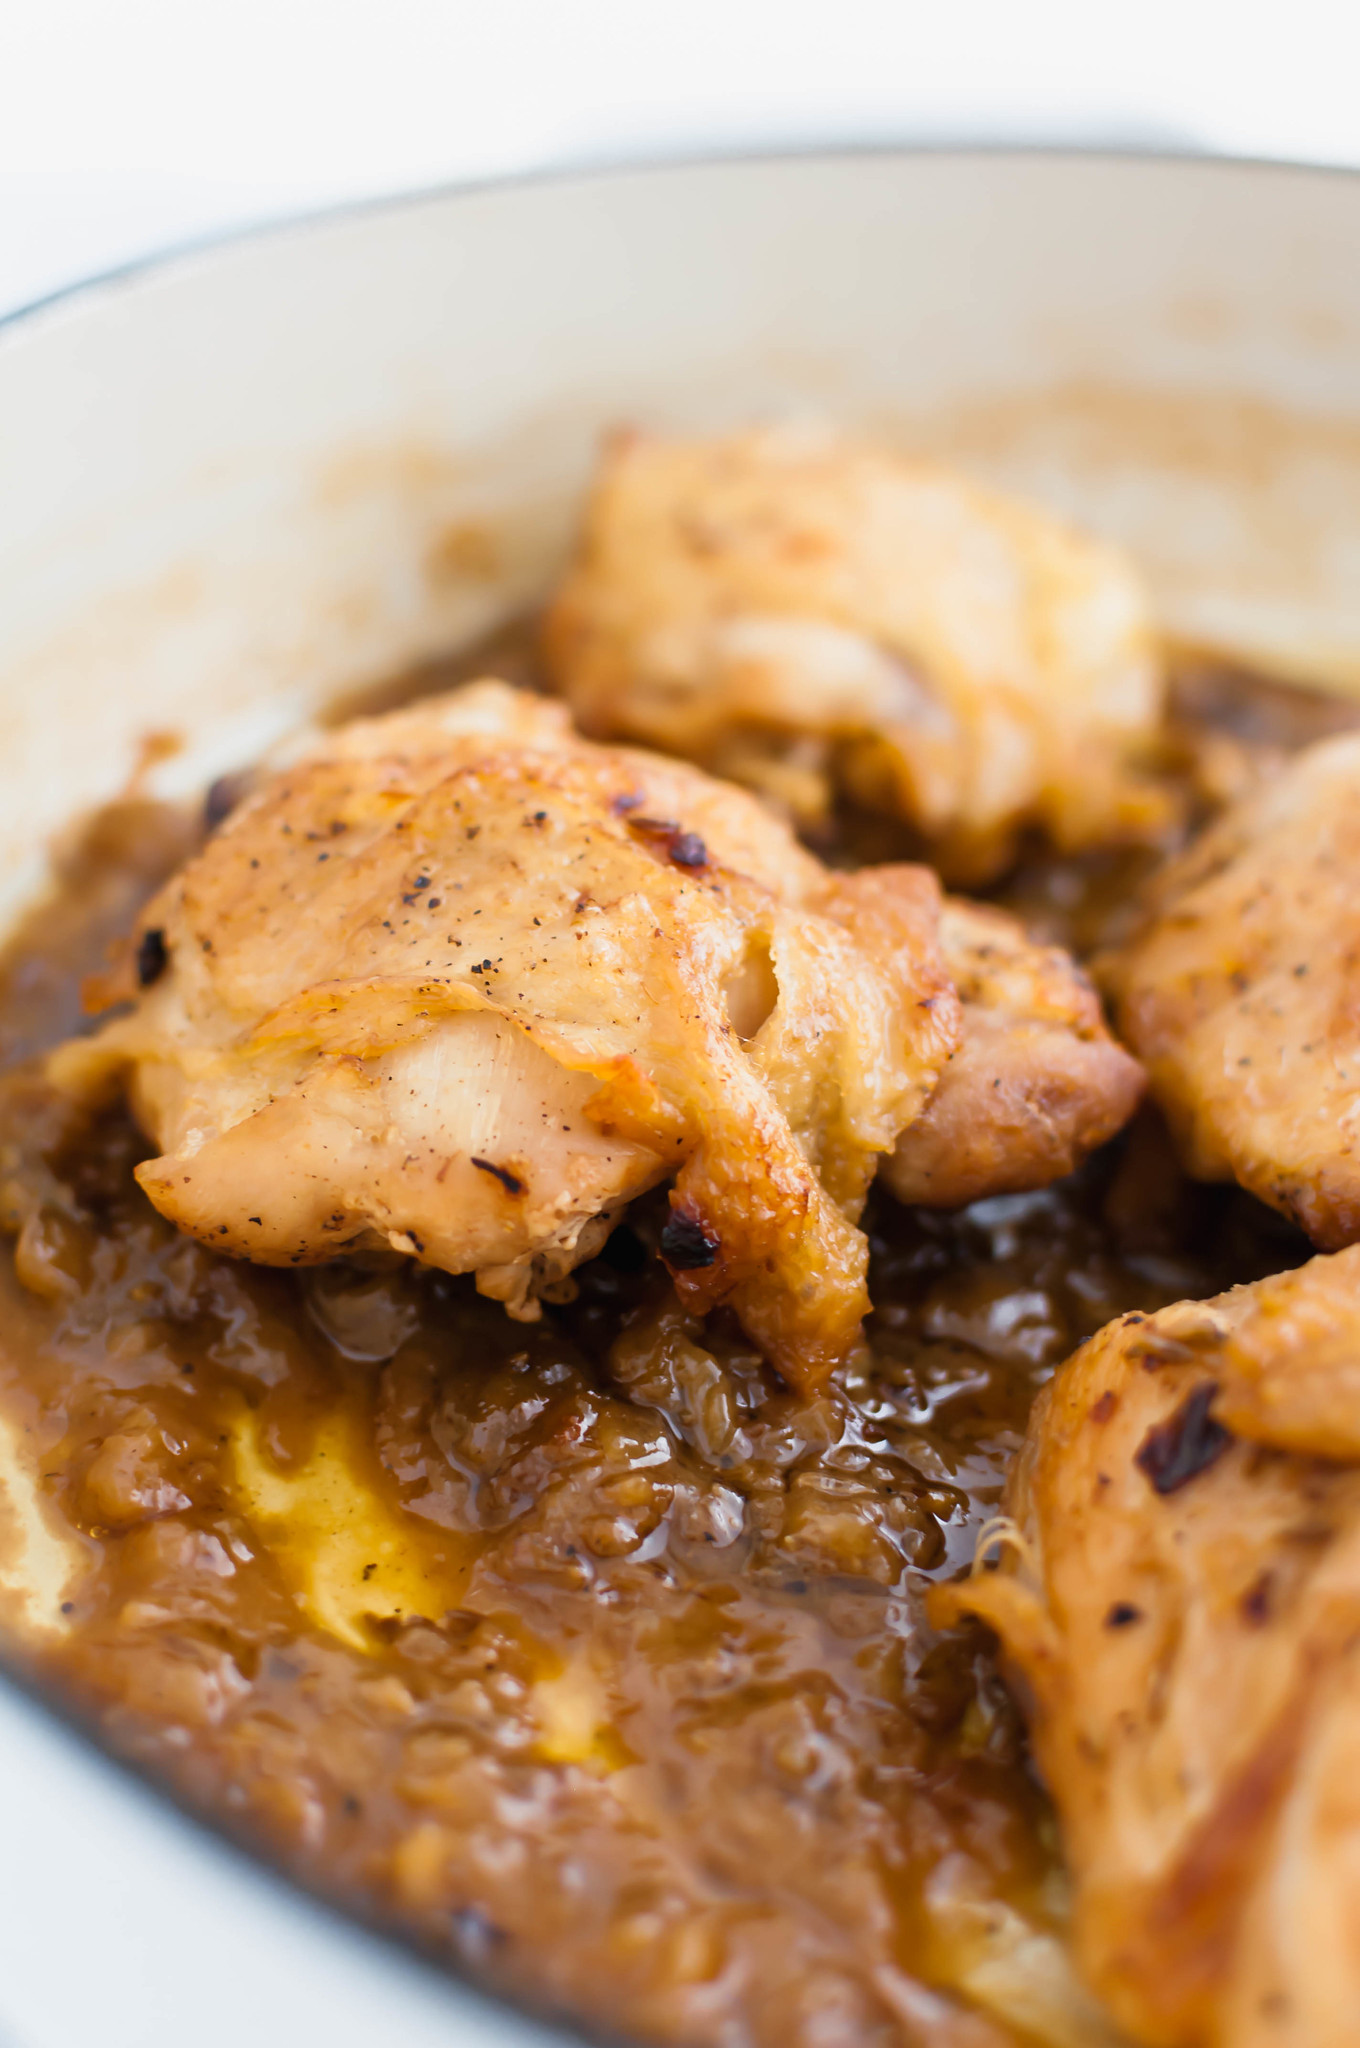 Hard Apple Cider Braised Chicken Thighs are a new fall favorite around here. Simmered in hard apple cider, chicken stock, onion and fennel seeds, this chicken is bursting with all the warm, hearty flavors of fall.